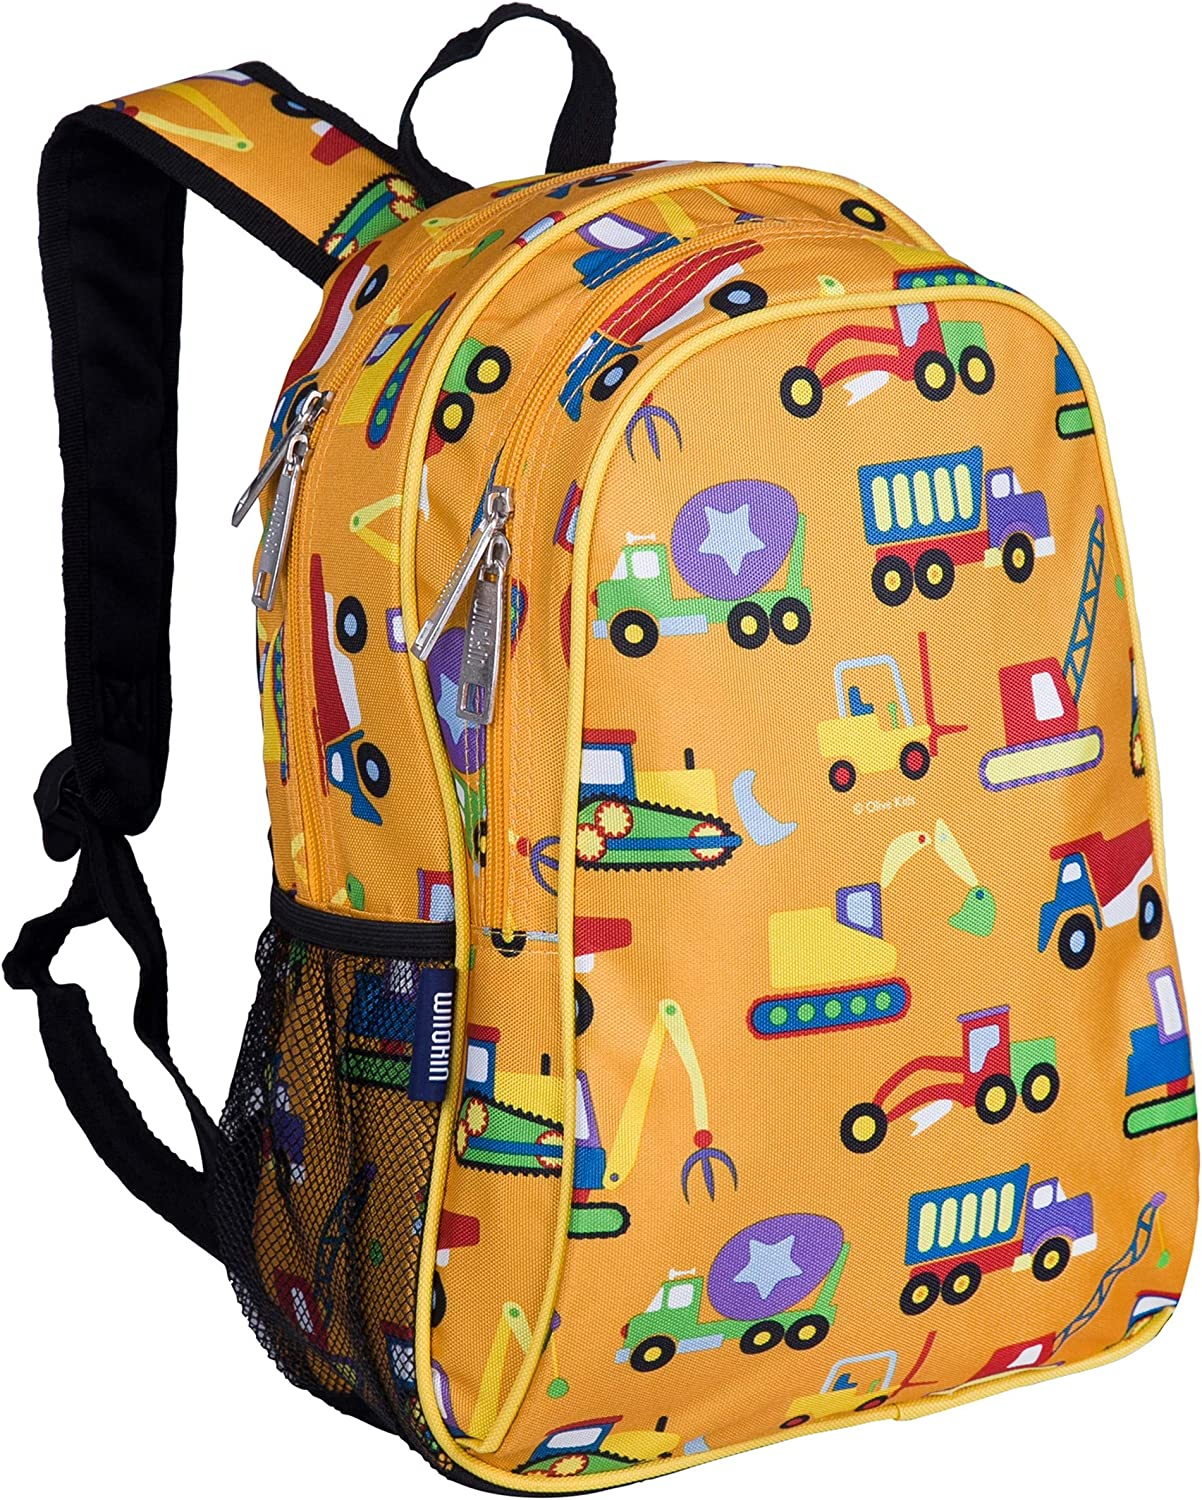 Wildkin Kids 15 Inch Backpack for Boys and Girls, Perfect Size for Preschool, Kindergarten and Elementary School